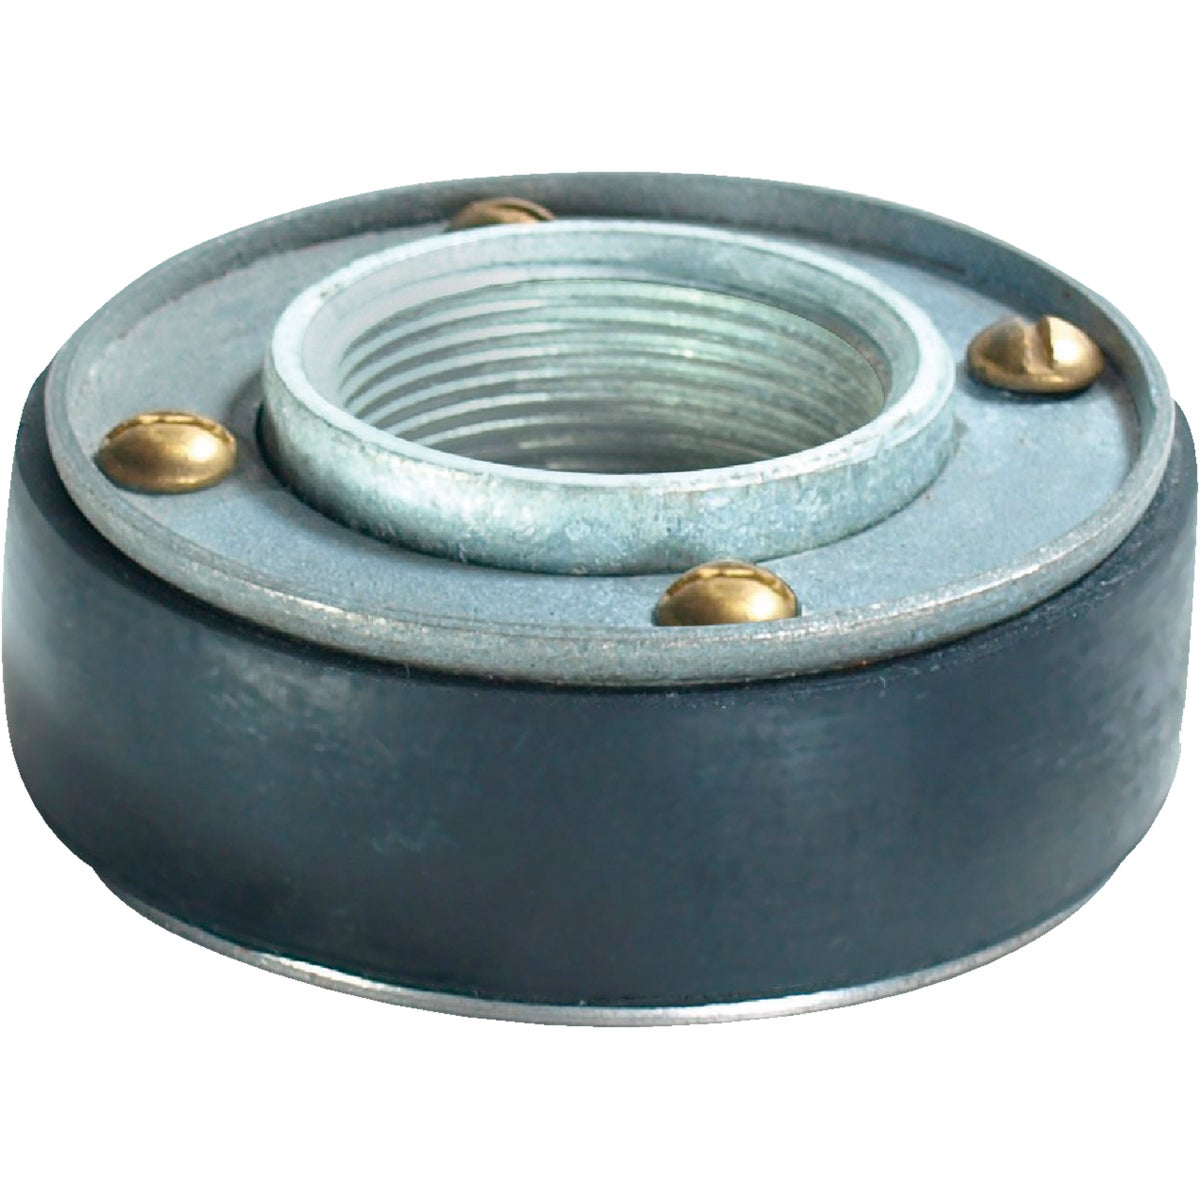 "4"" STANDPIPE FLOOD GUARD - S-4FH by Gen Wire Spring Co"